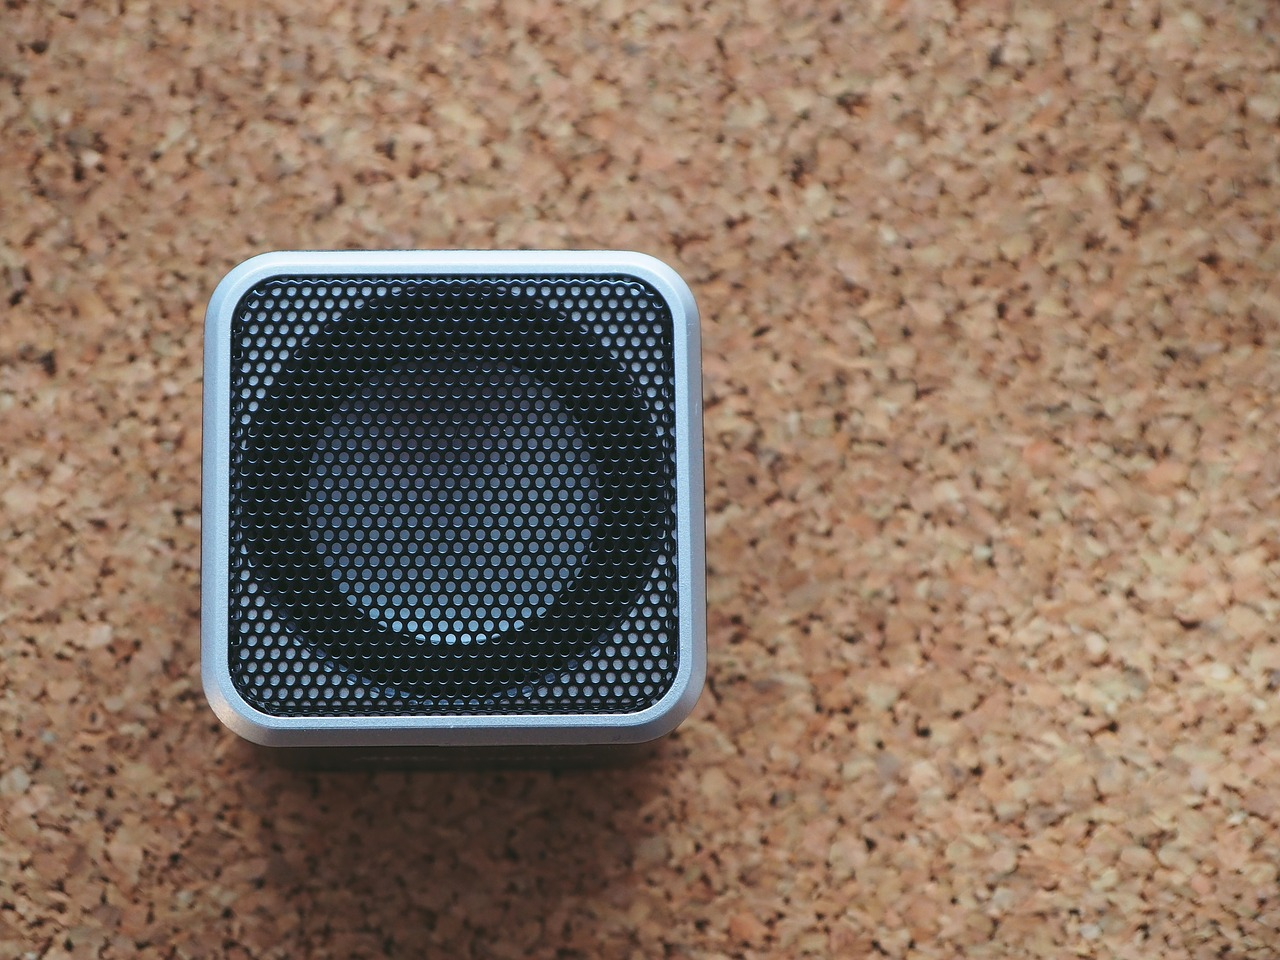 The Best Portable Bluetooth Speakers of 2019 – Get the Best Audio Quality from Your Bluetooth Speakers